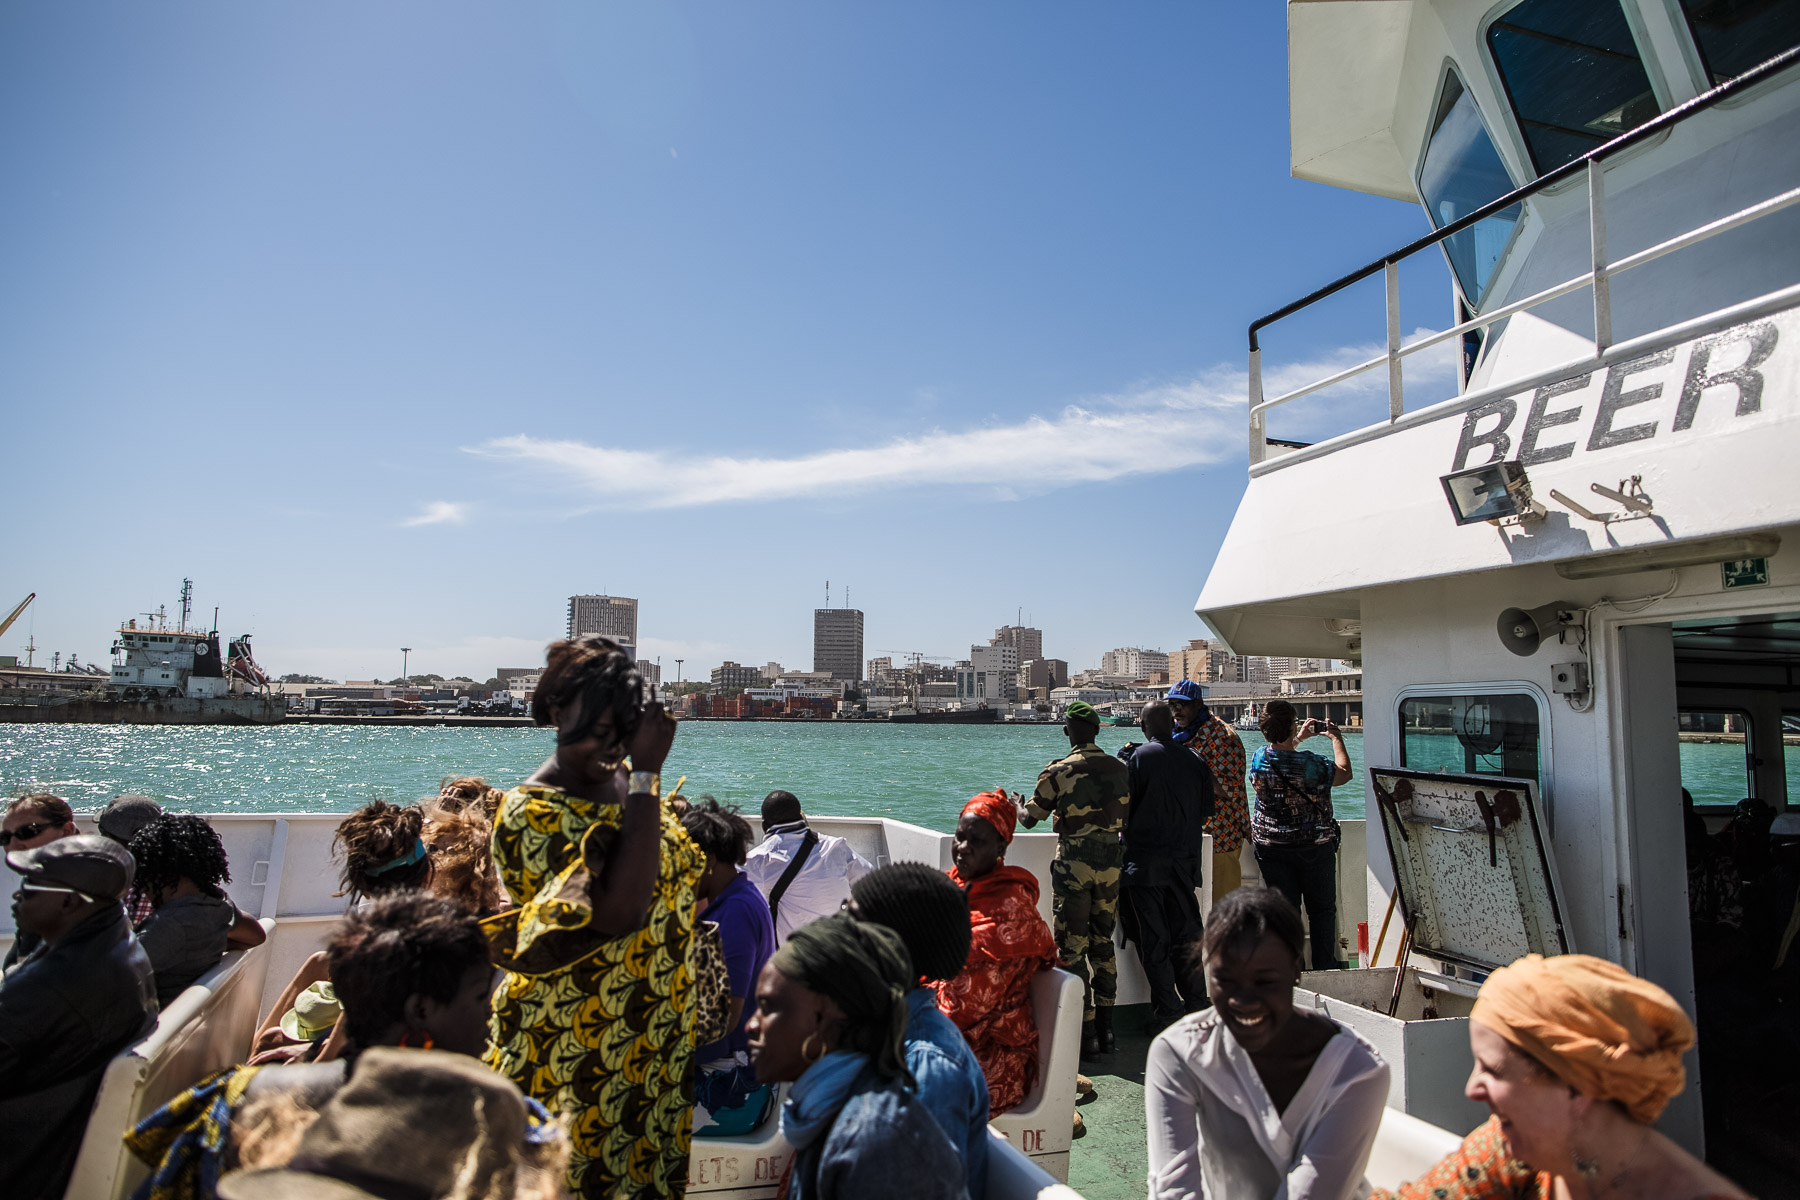 Ferry to Goree Island, Dakar